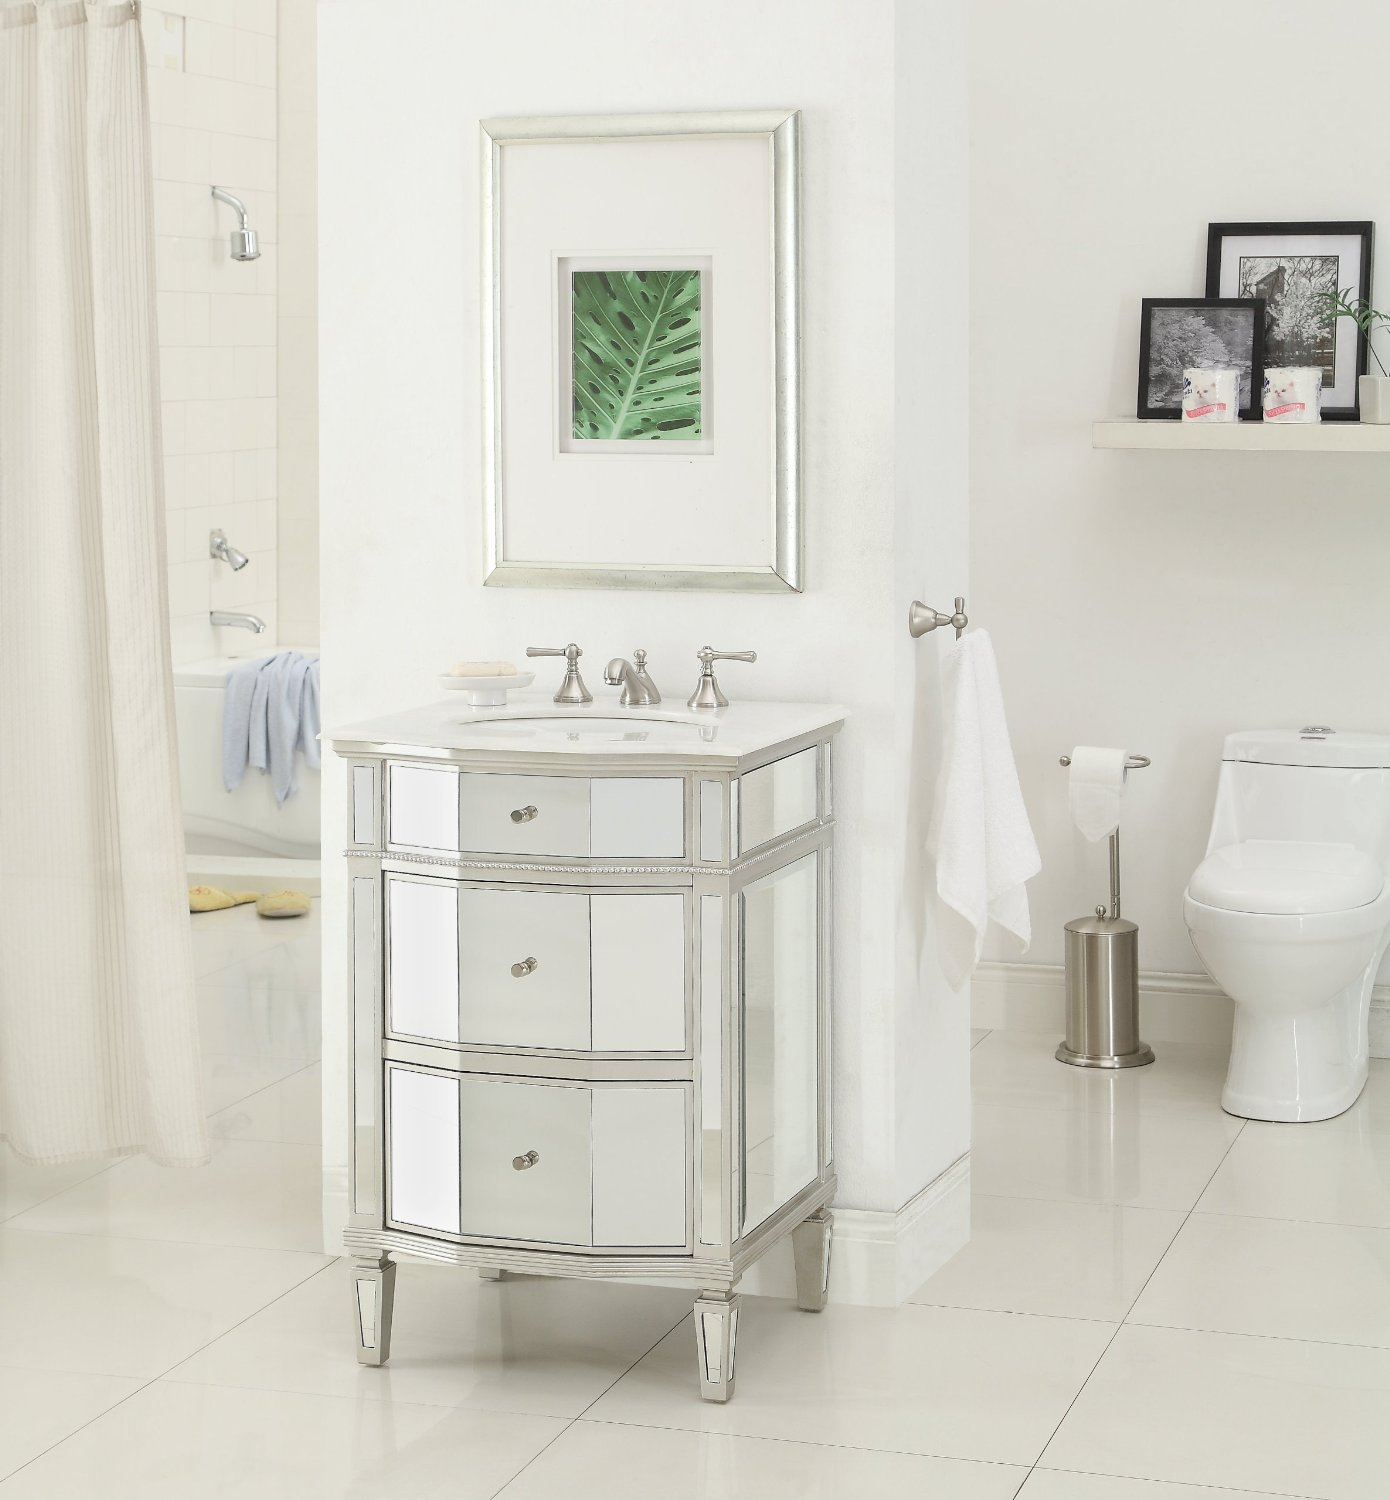 Where can i buy a bathroom vanity -  Adelina 24 Inch Mirrored Bathroom Vanity